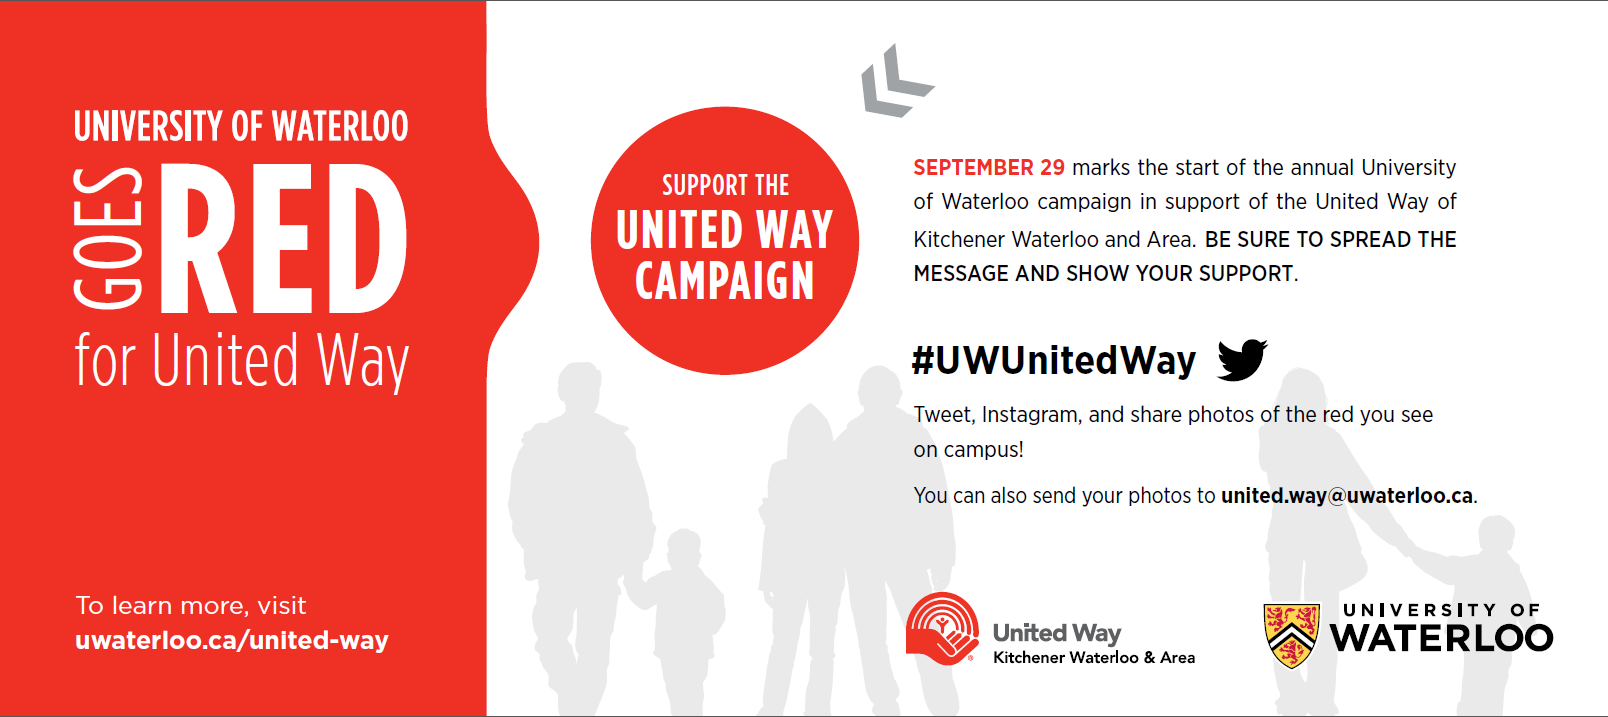 UWaterloo Goes Red for United Way